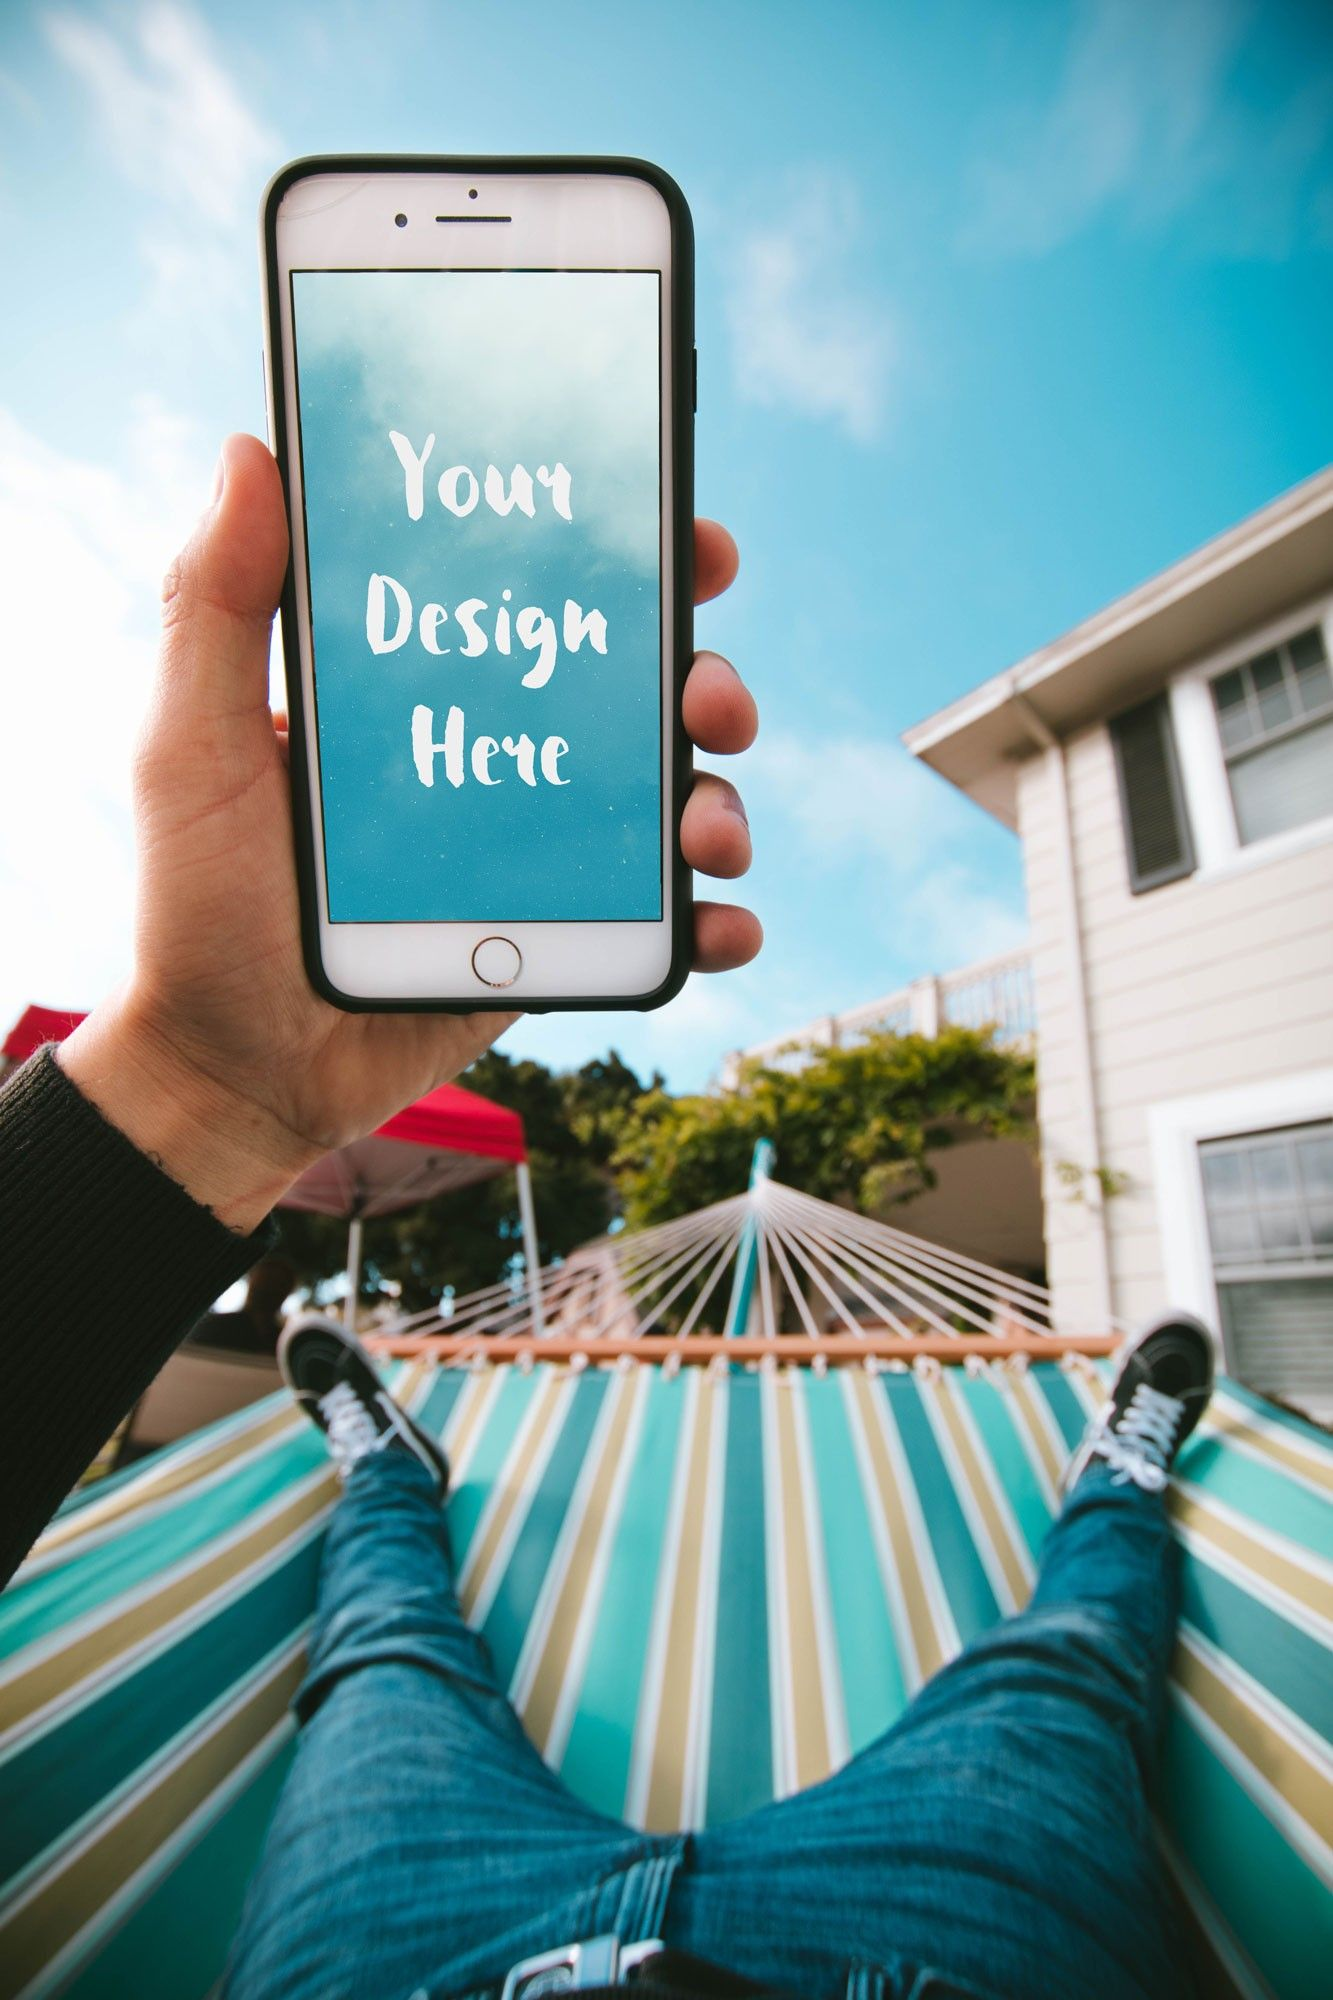 Download Iphone In The Hand Of A Guy In A Hammock Instagram Marketing Digital Marketing Strategy Online Marketing Tools